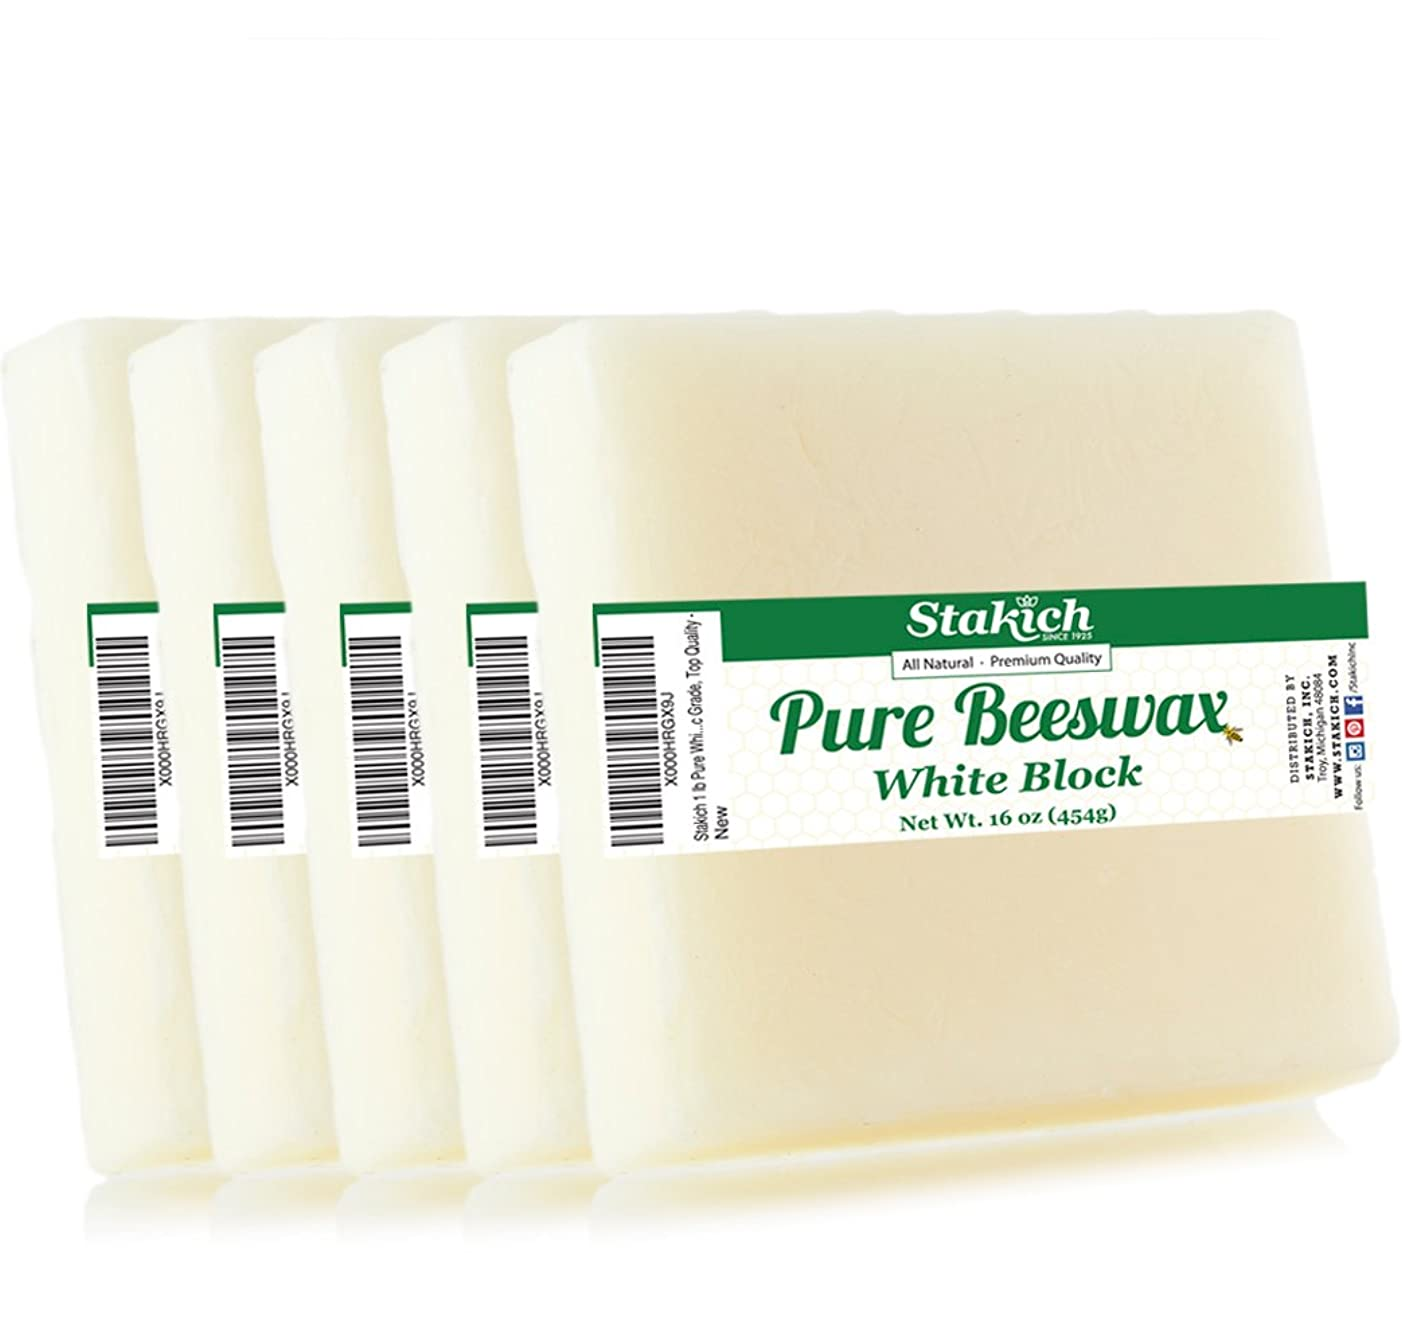 Stakich Pure White BEESWAX Blocks - 100% Natural, Cosmetic Grade, Premium Quality - 5 lb (in 1 lb blocks)